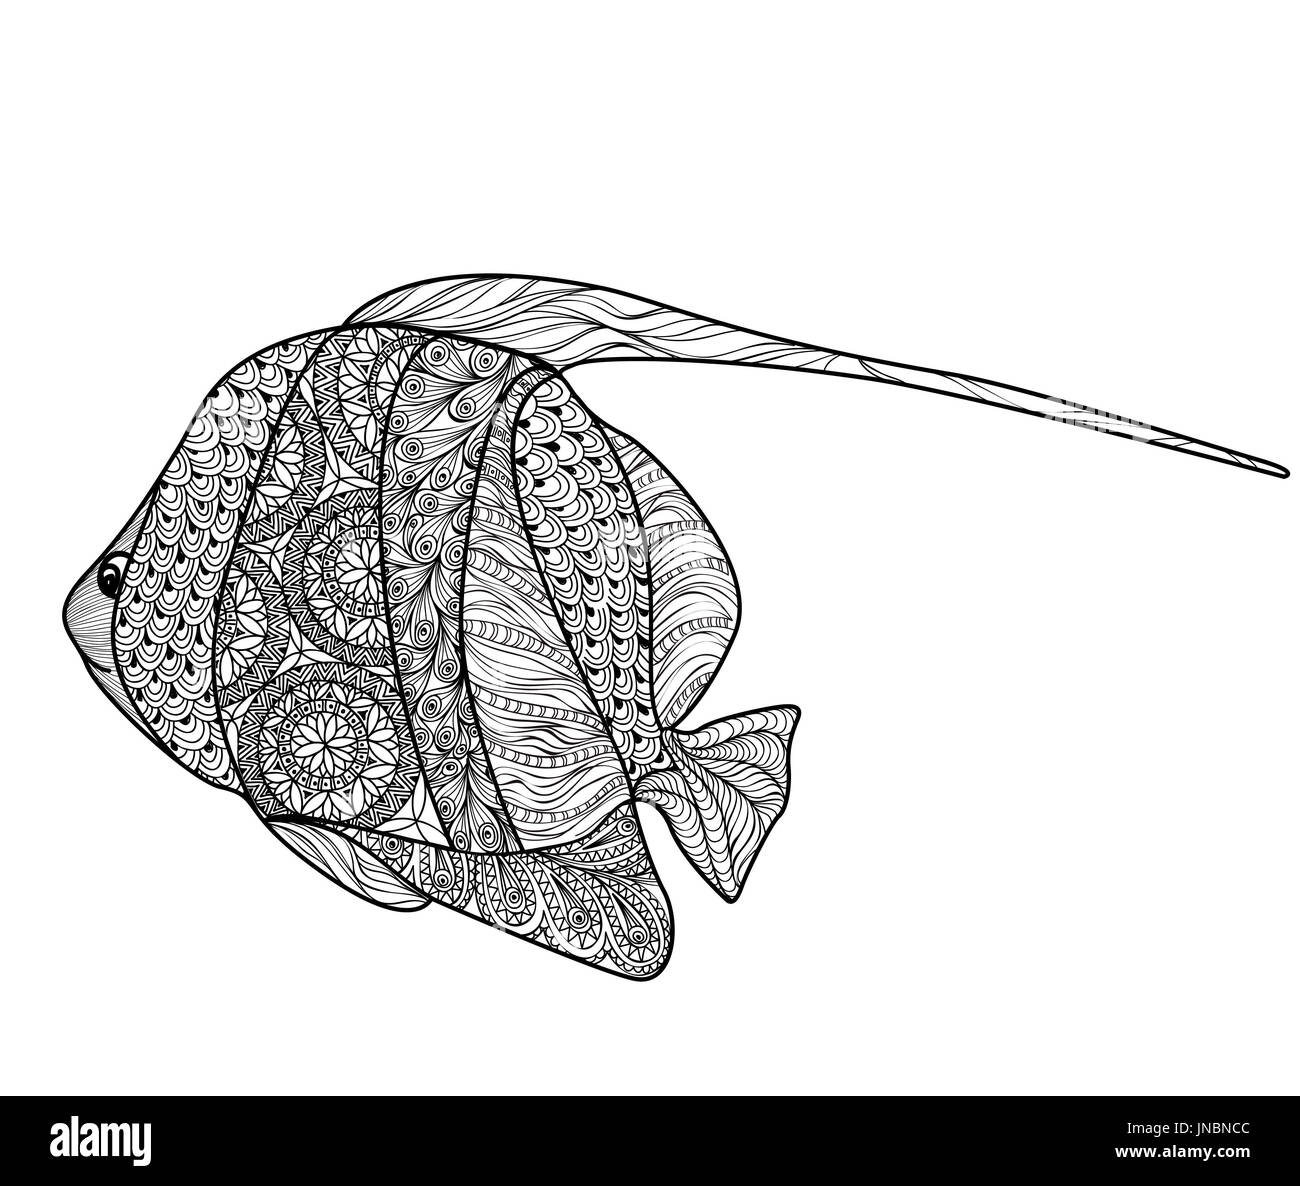 Fish tattoo isolated with ornamental hand drawn pattern. Doodle ...